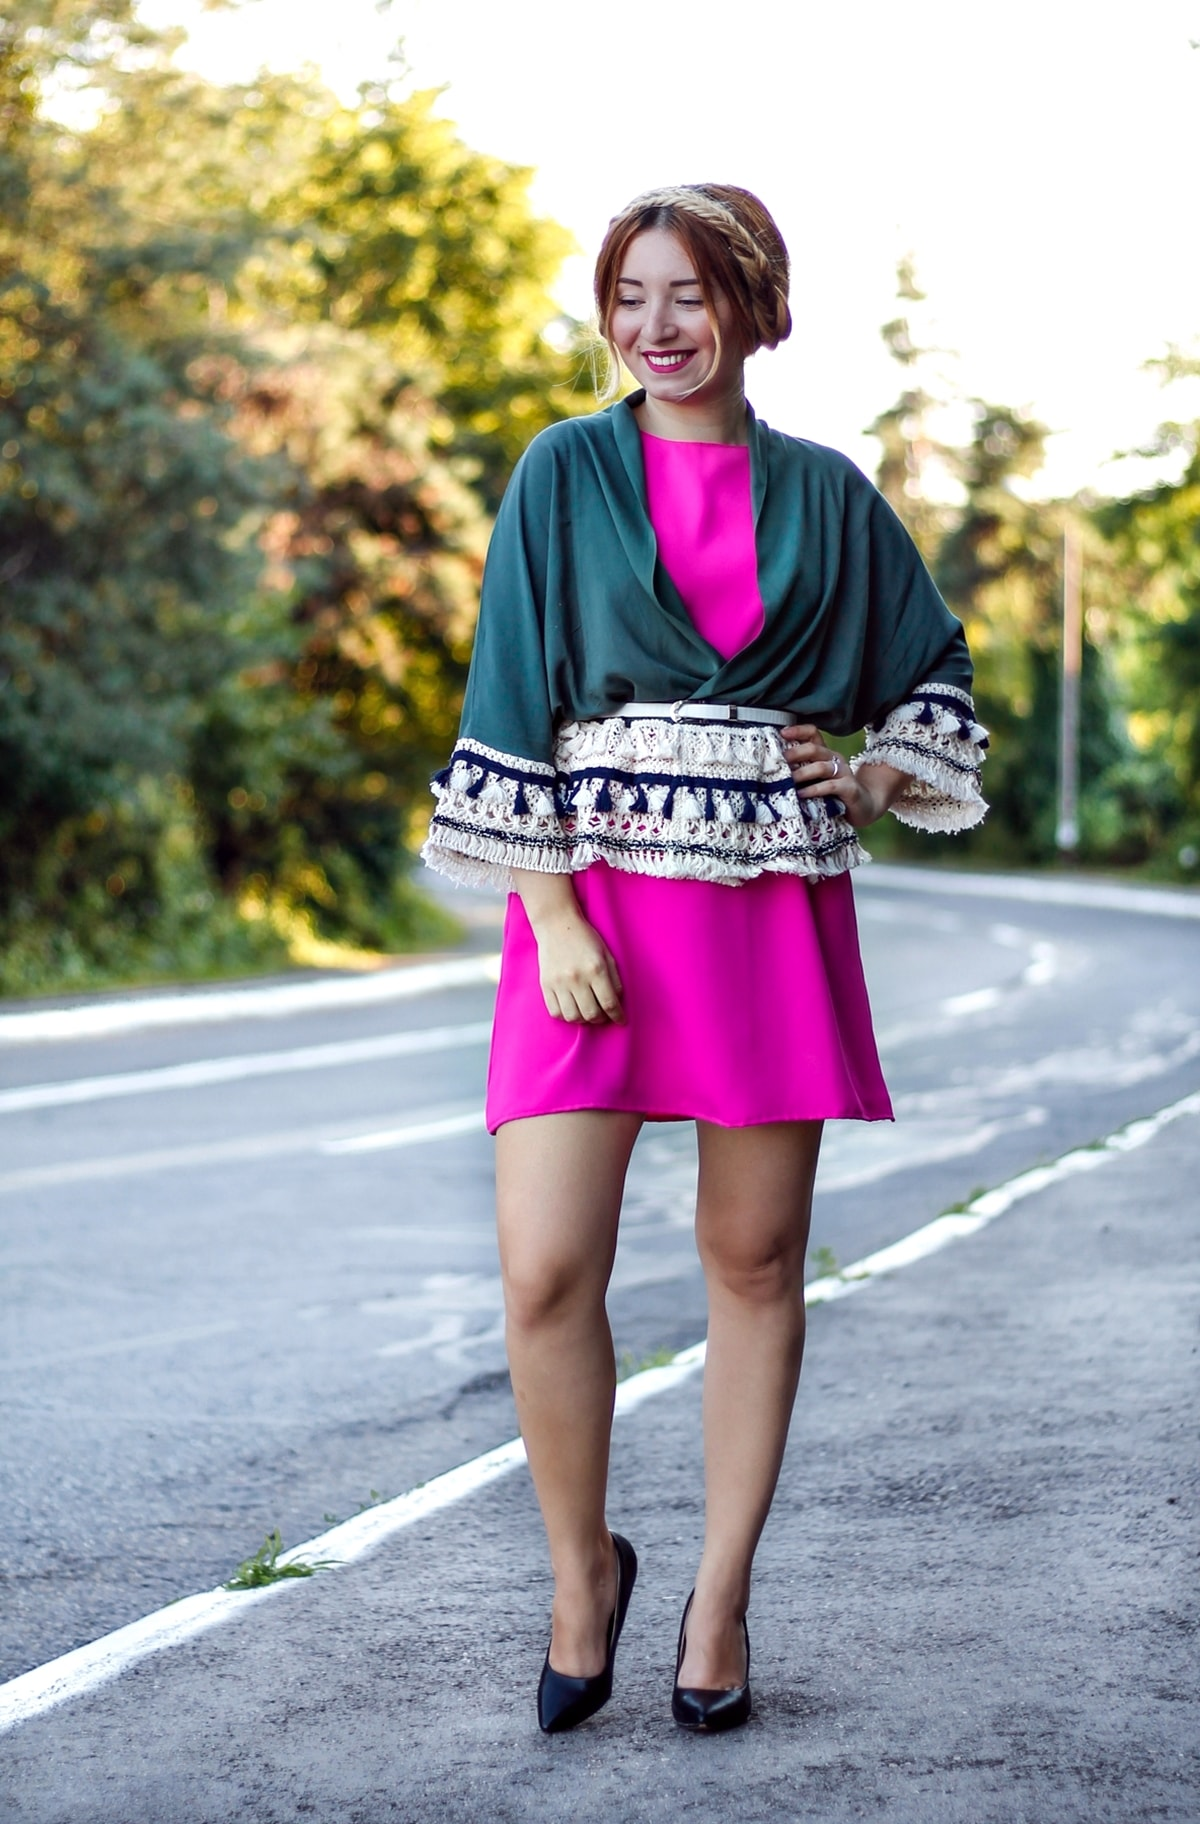 Street style: fucisa pink dress, military green kimono with tassels, black shoes, heels, summer look, braids hairstyle, fashion blogger Andreea Ristea